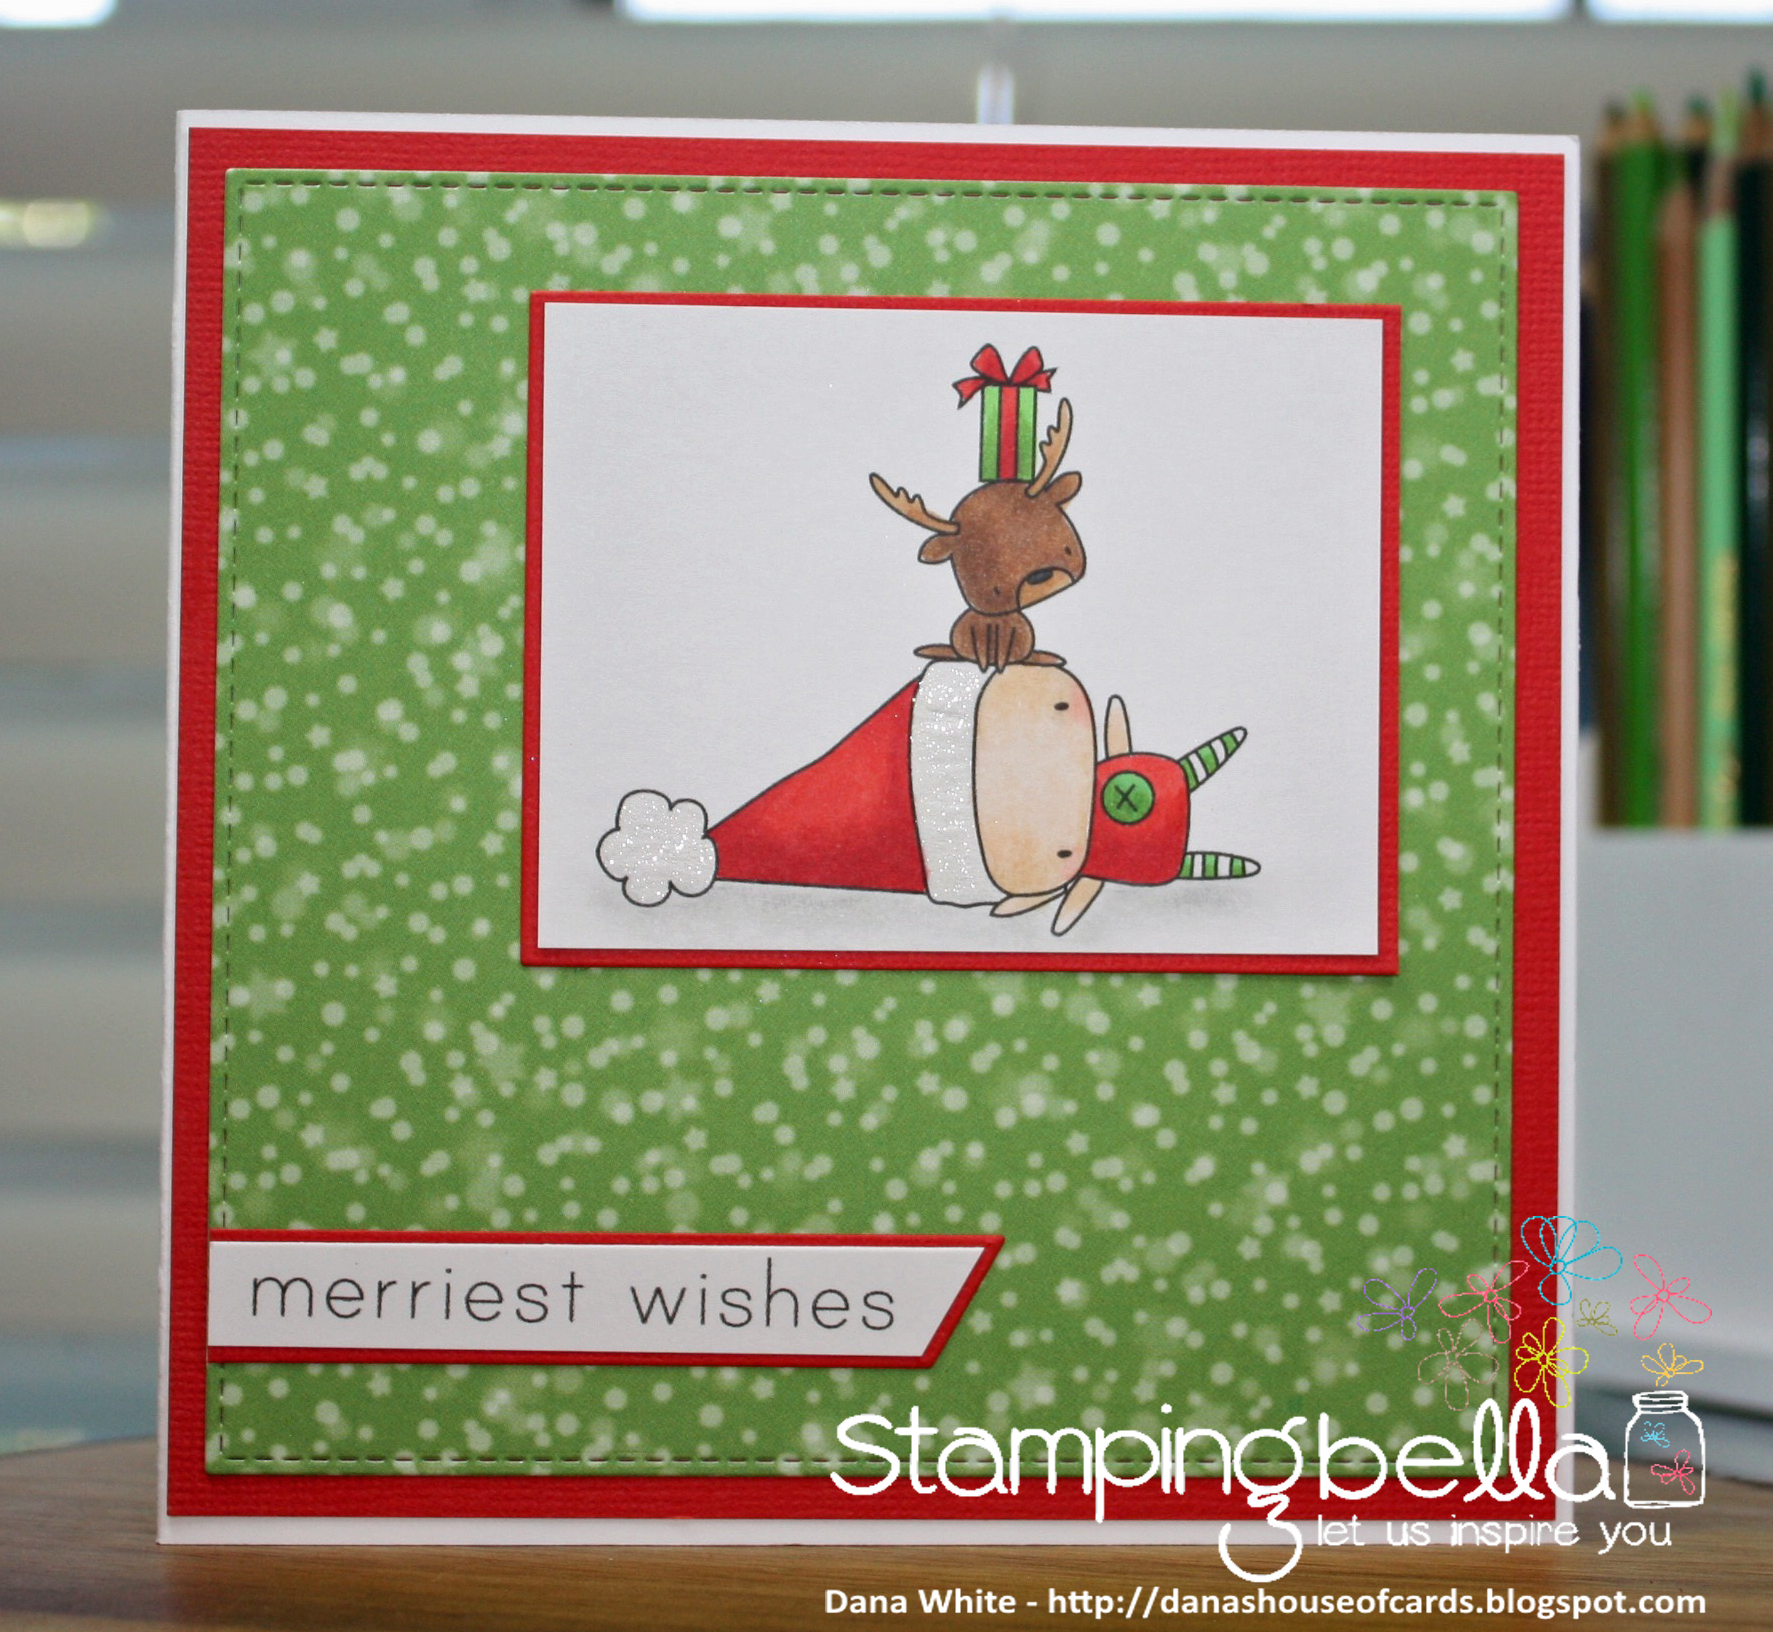 www.stampingbella.com : Rubber stamp called THE LITTLES ELF with a REINDEER on TOP card by Dana White